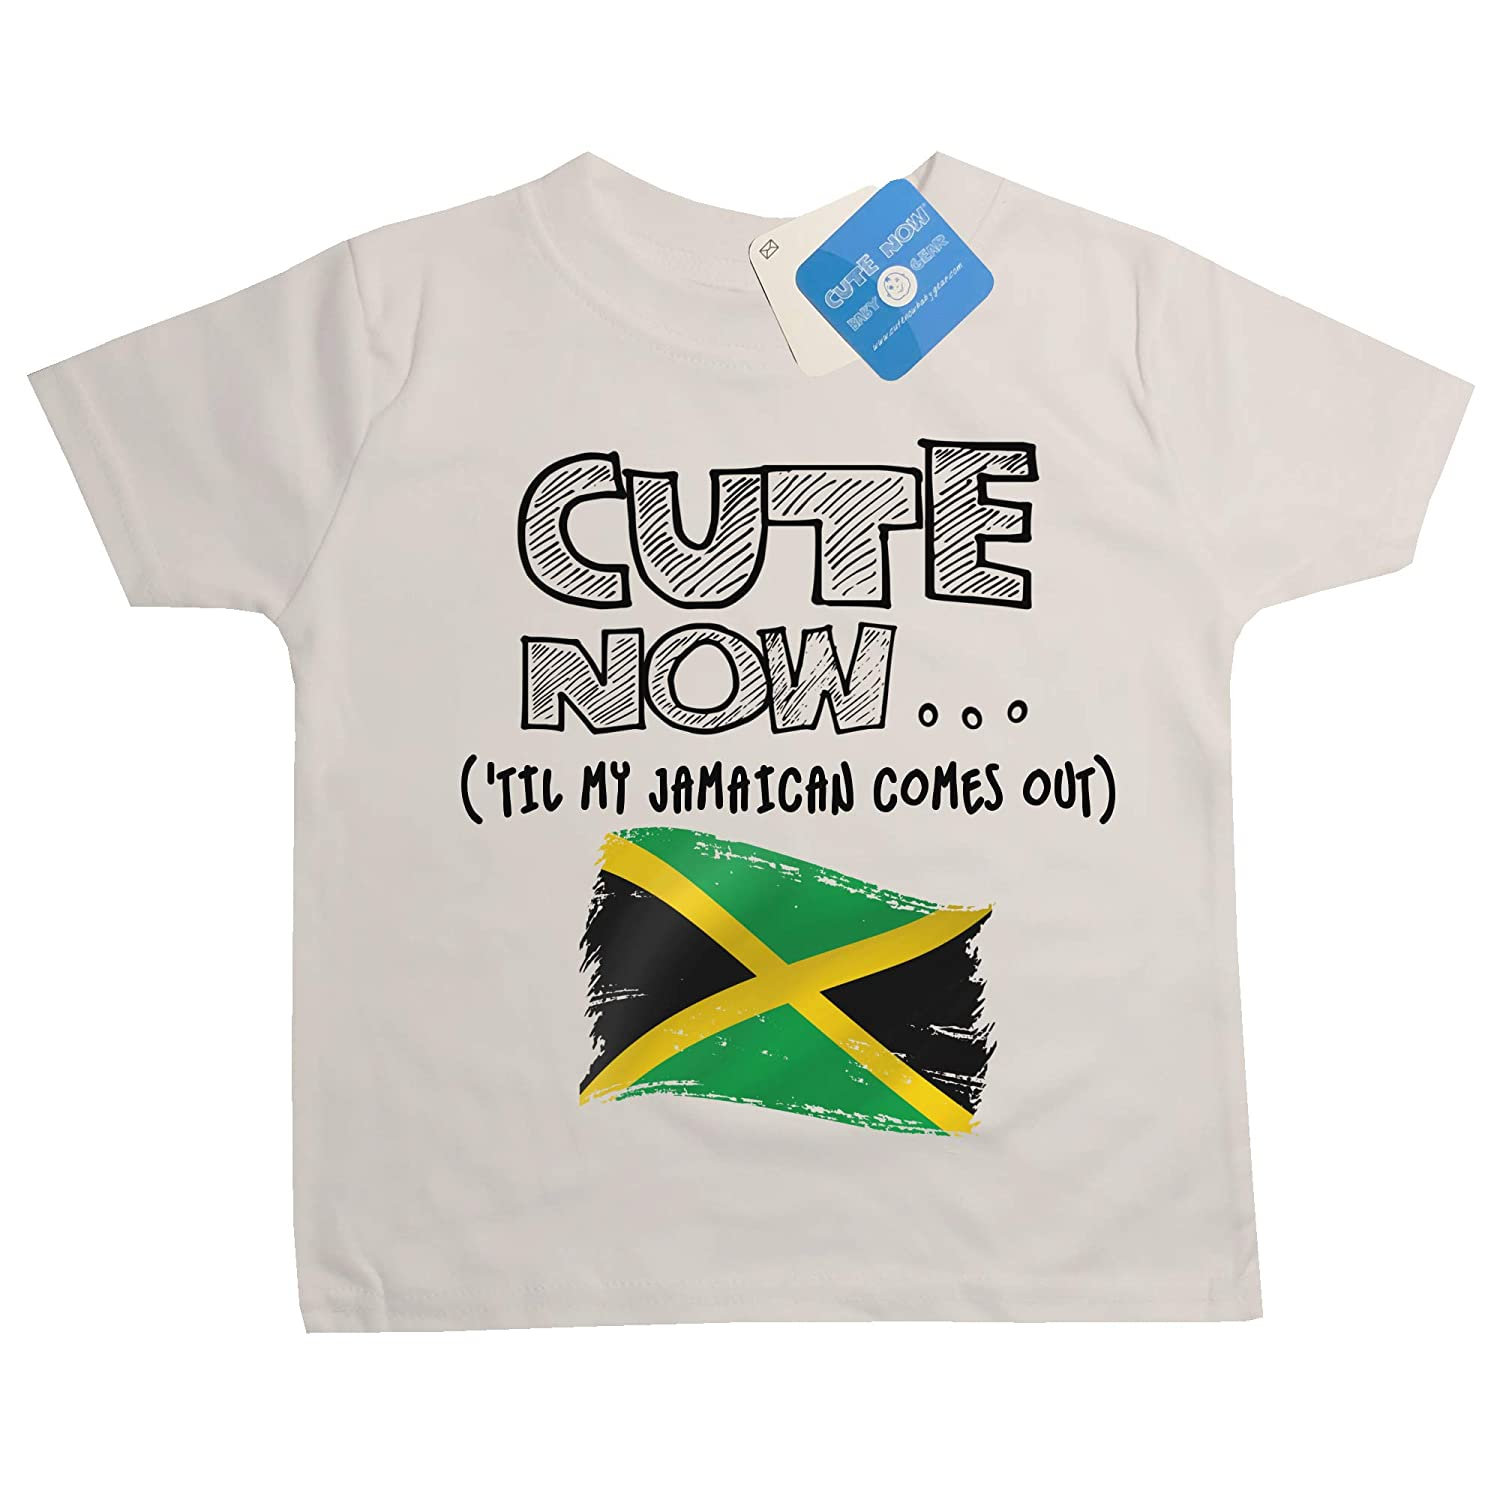 Cute Now Toddler Jamaica T-Shirt Til My Jamaican Comes Out Kids Shirt Top in White 2T-4T